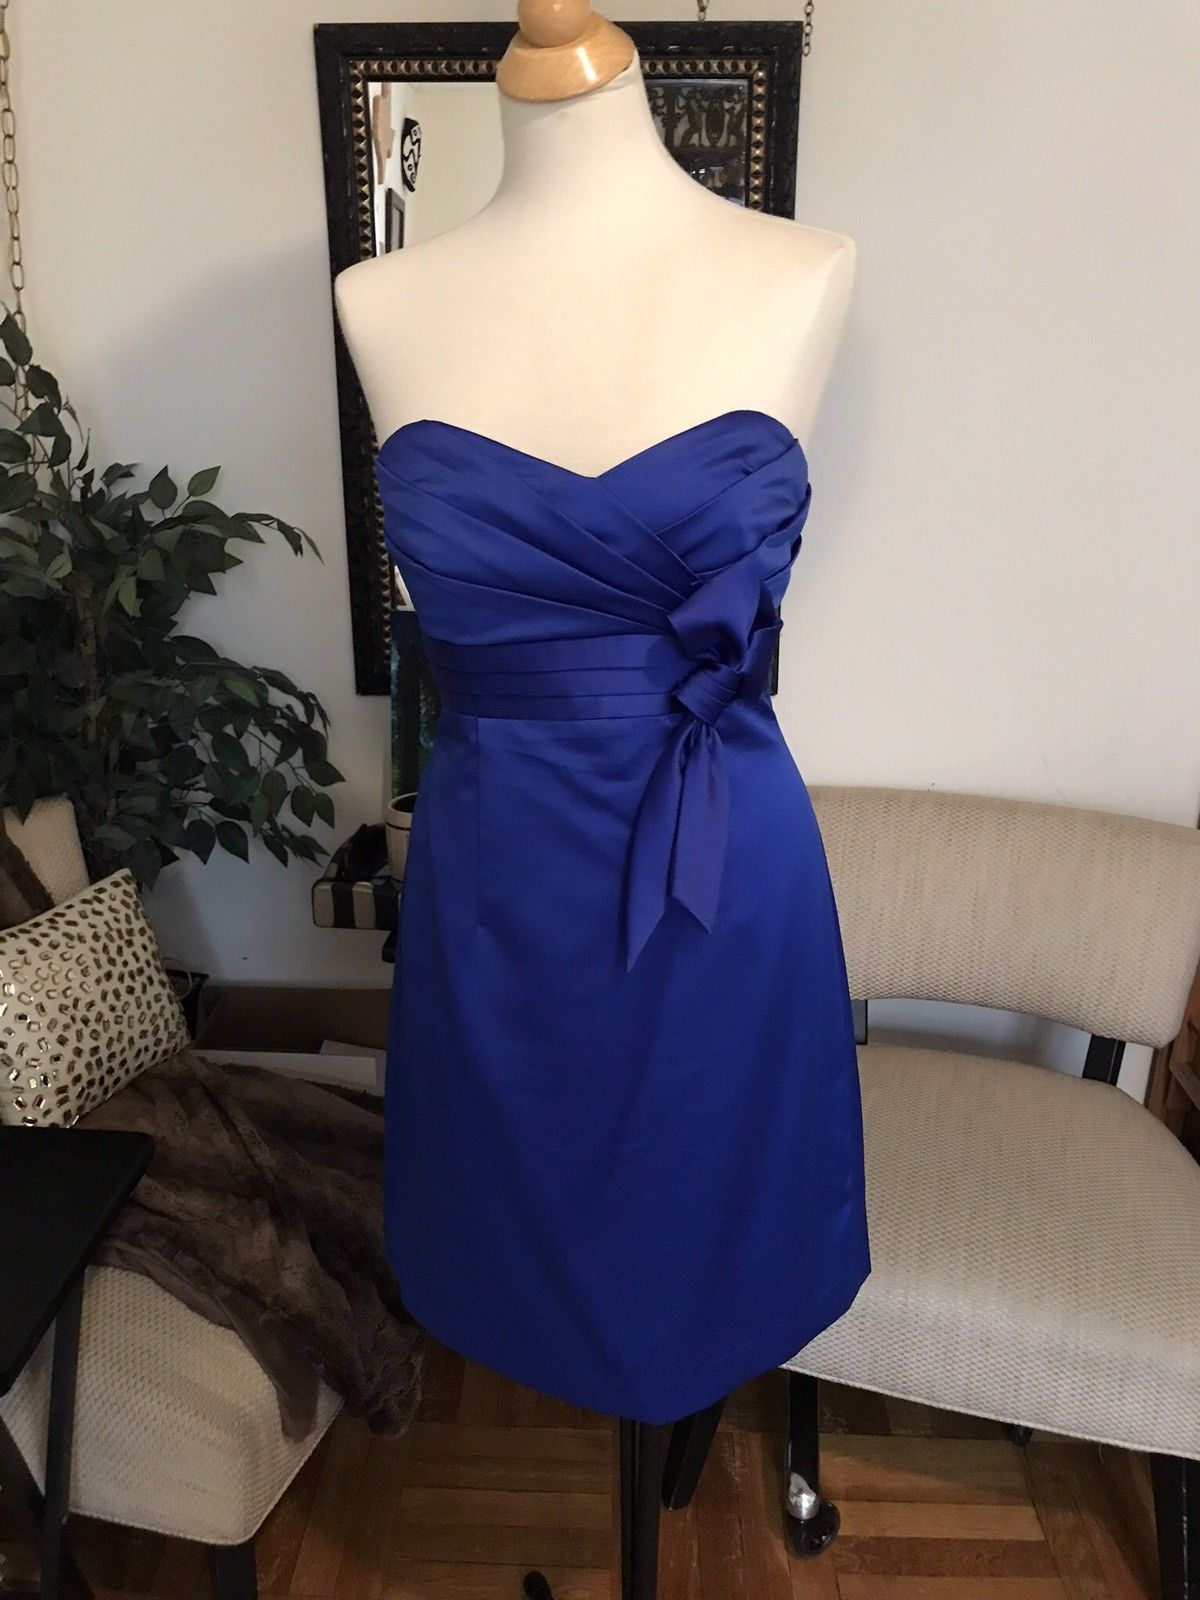 Details about alfred angelo bridesmaid dress size blue strapless